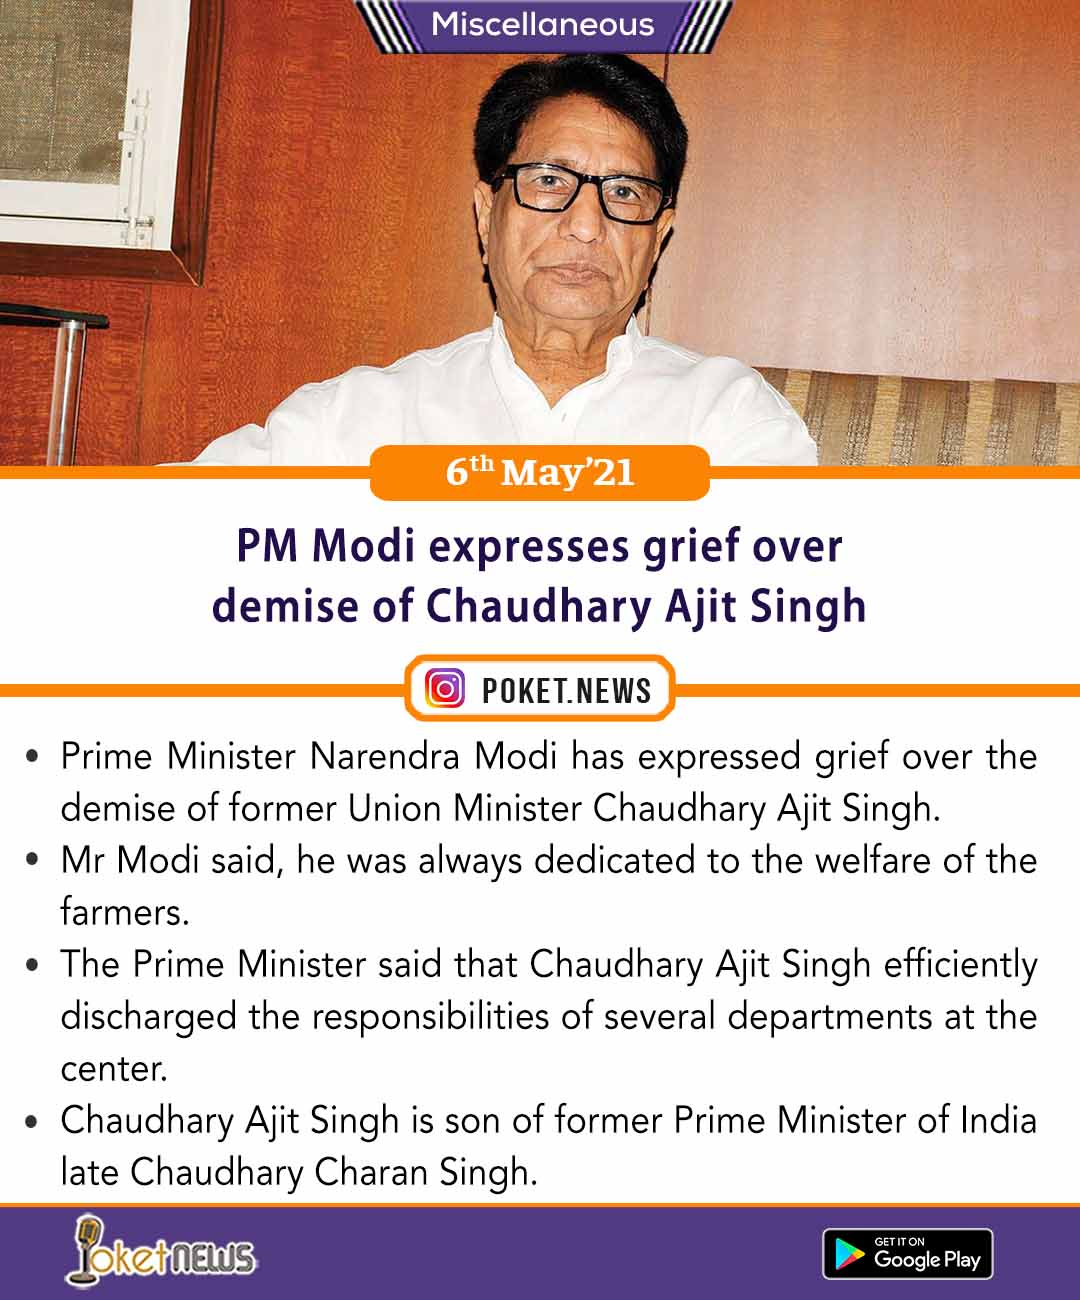 PM Modi expresses grief over demise of Chaudhary Ajit Singh